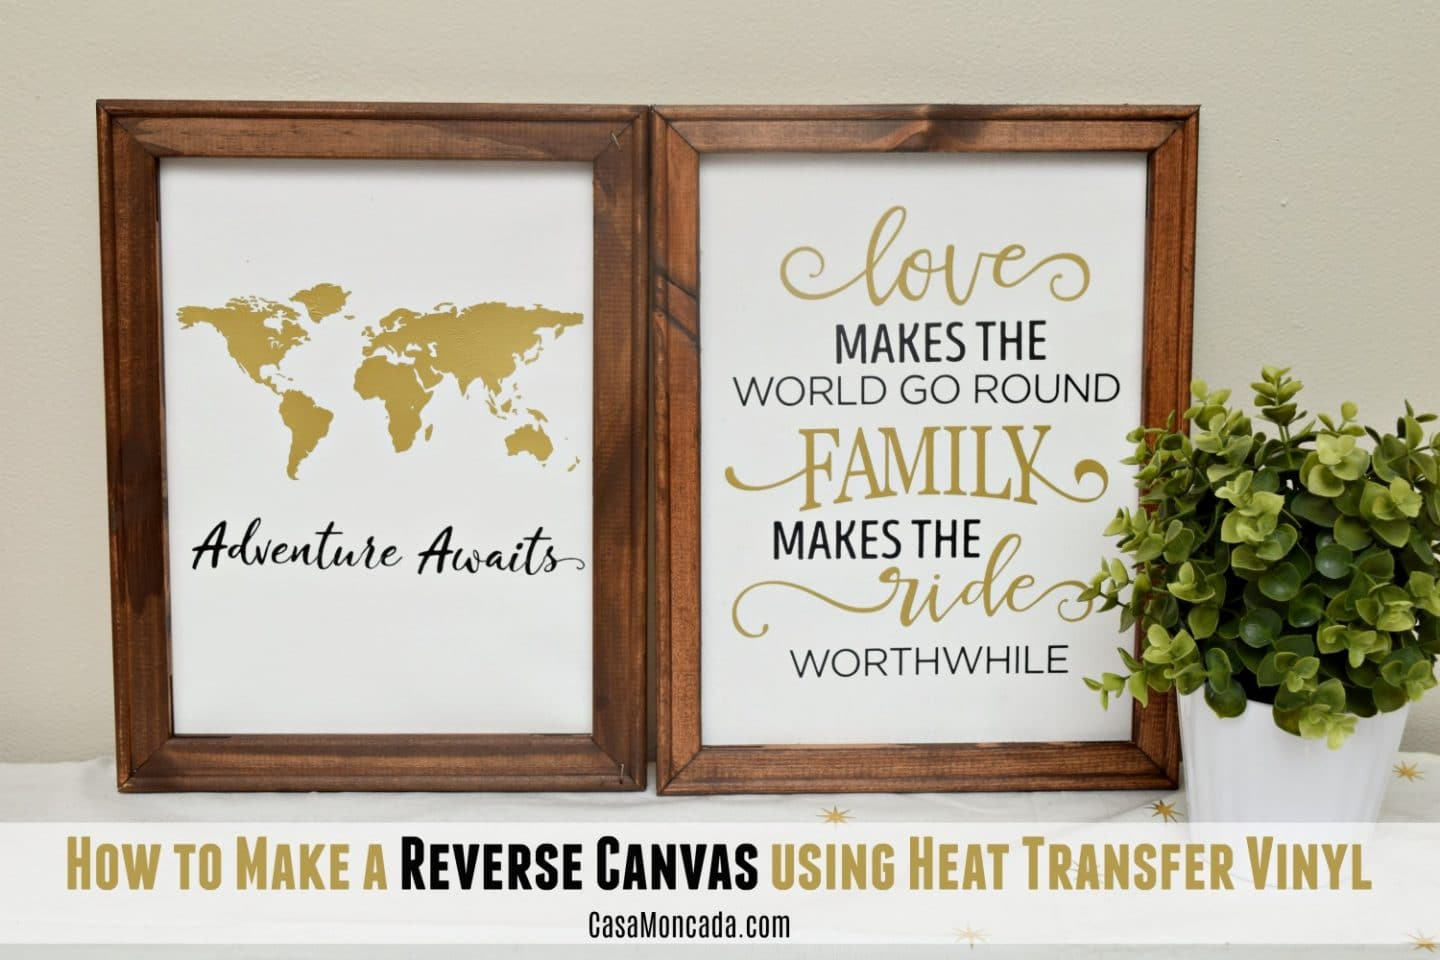 How to Make a Reverse Canvas using Heat Transfer Vinyl